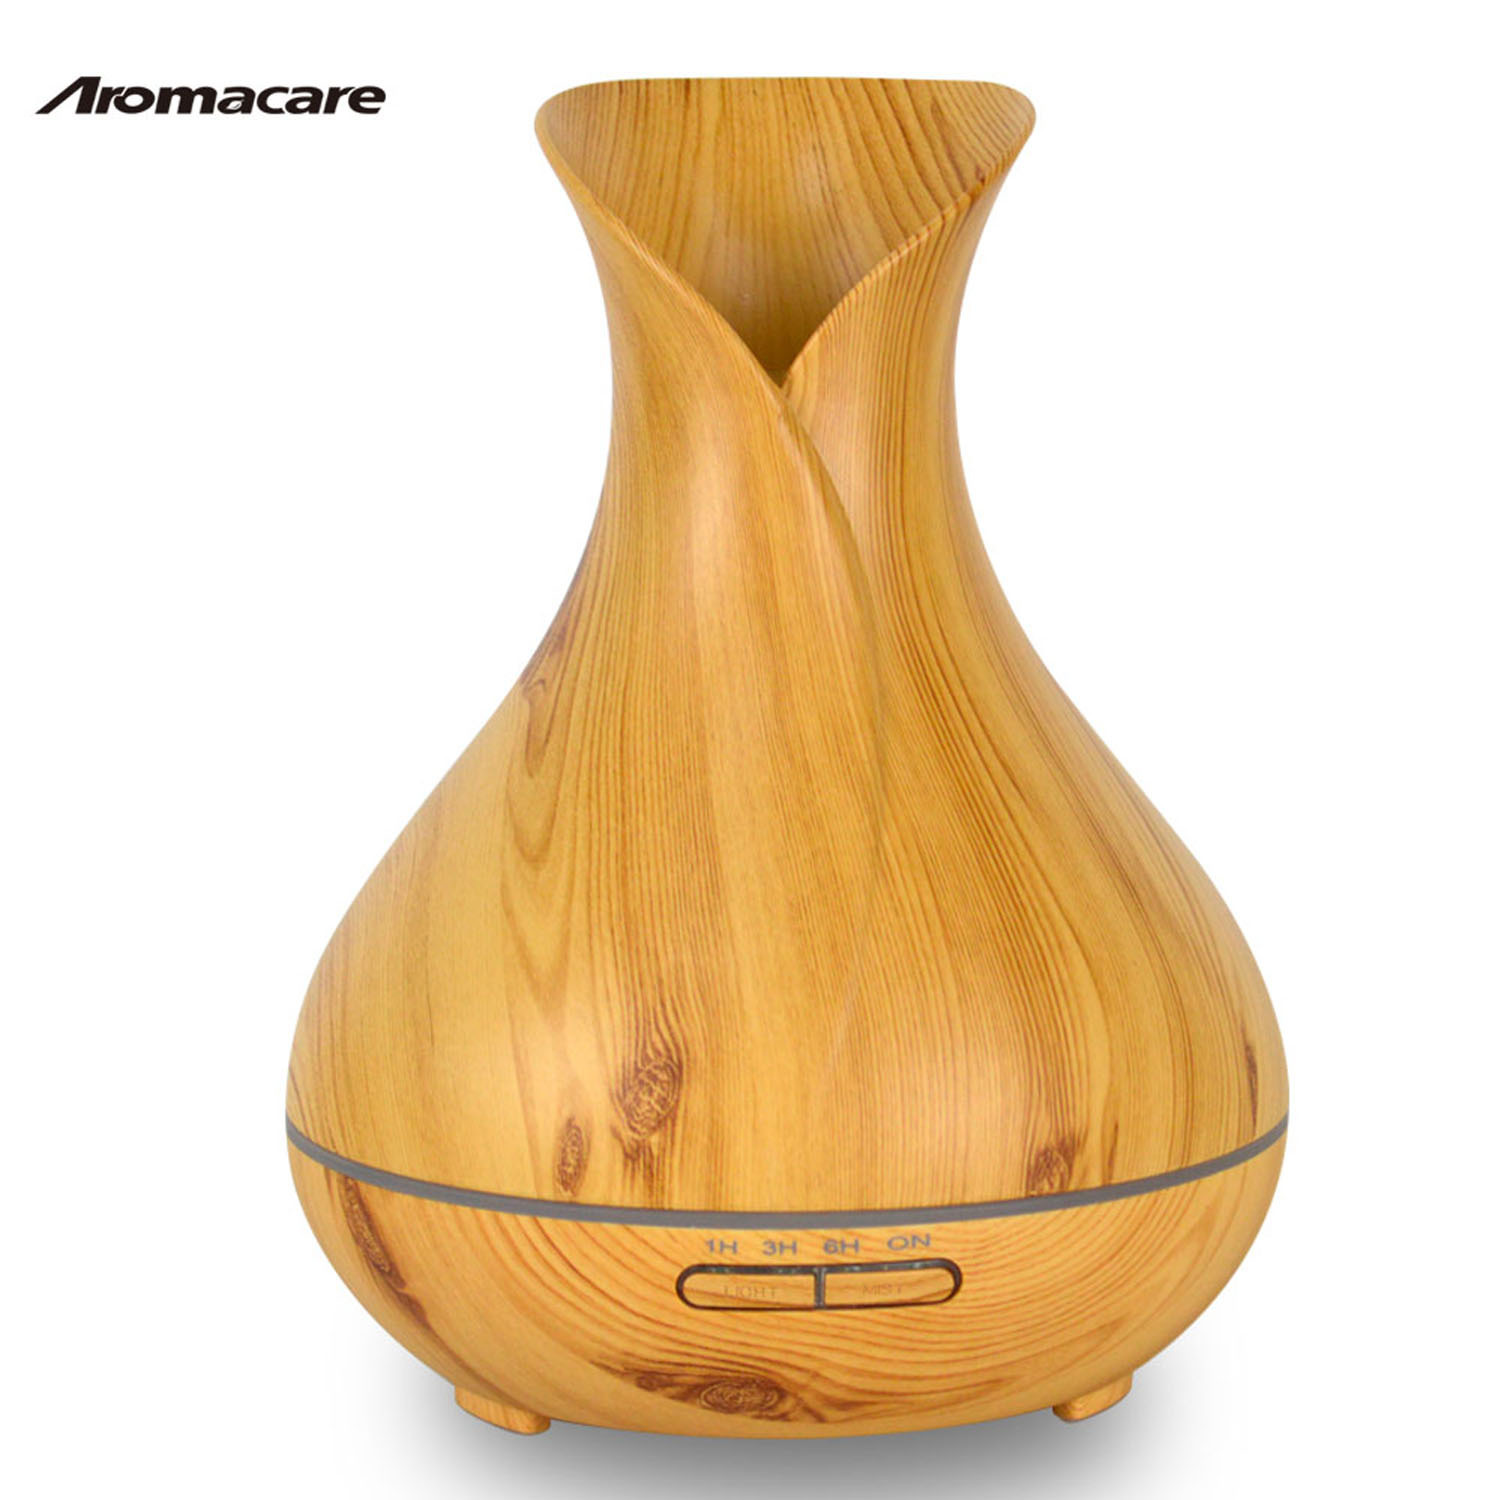 portable humidifier,scent aroma diffuser,necklace aromathera